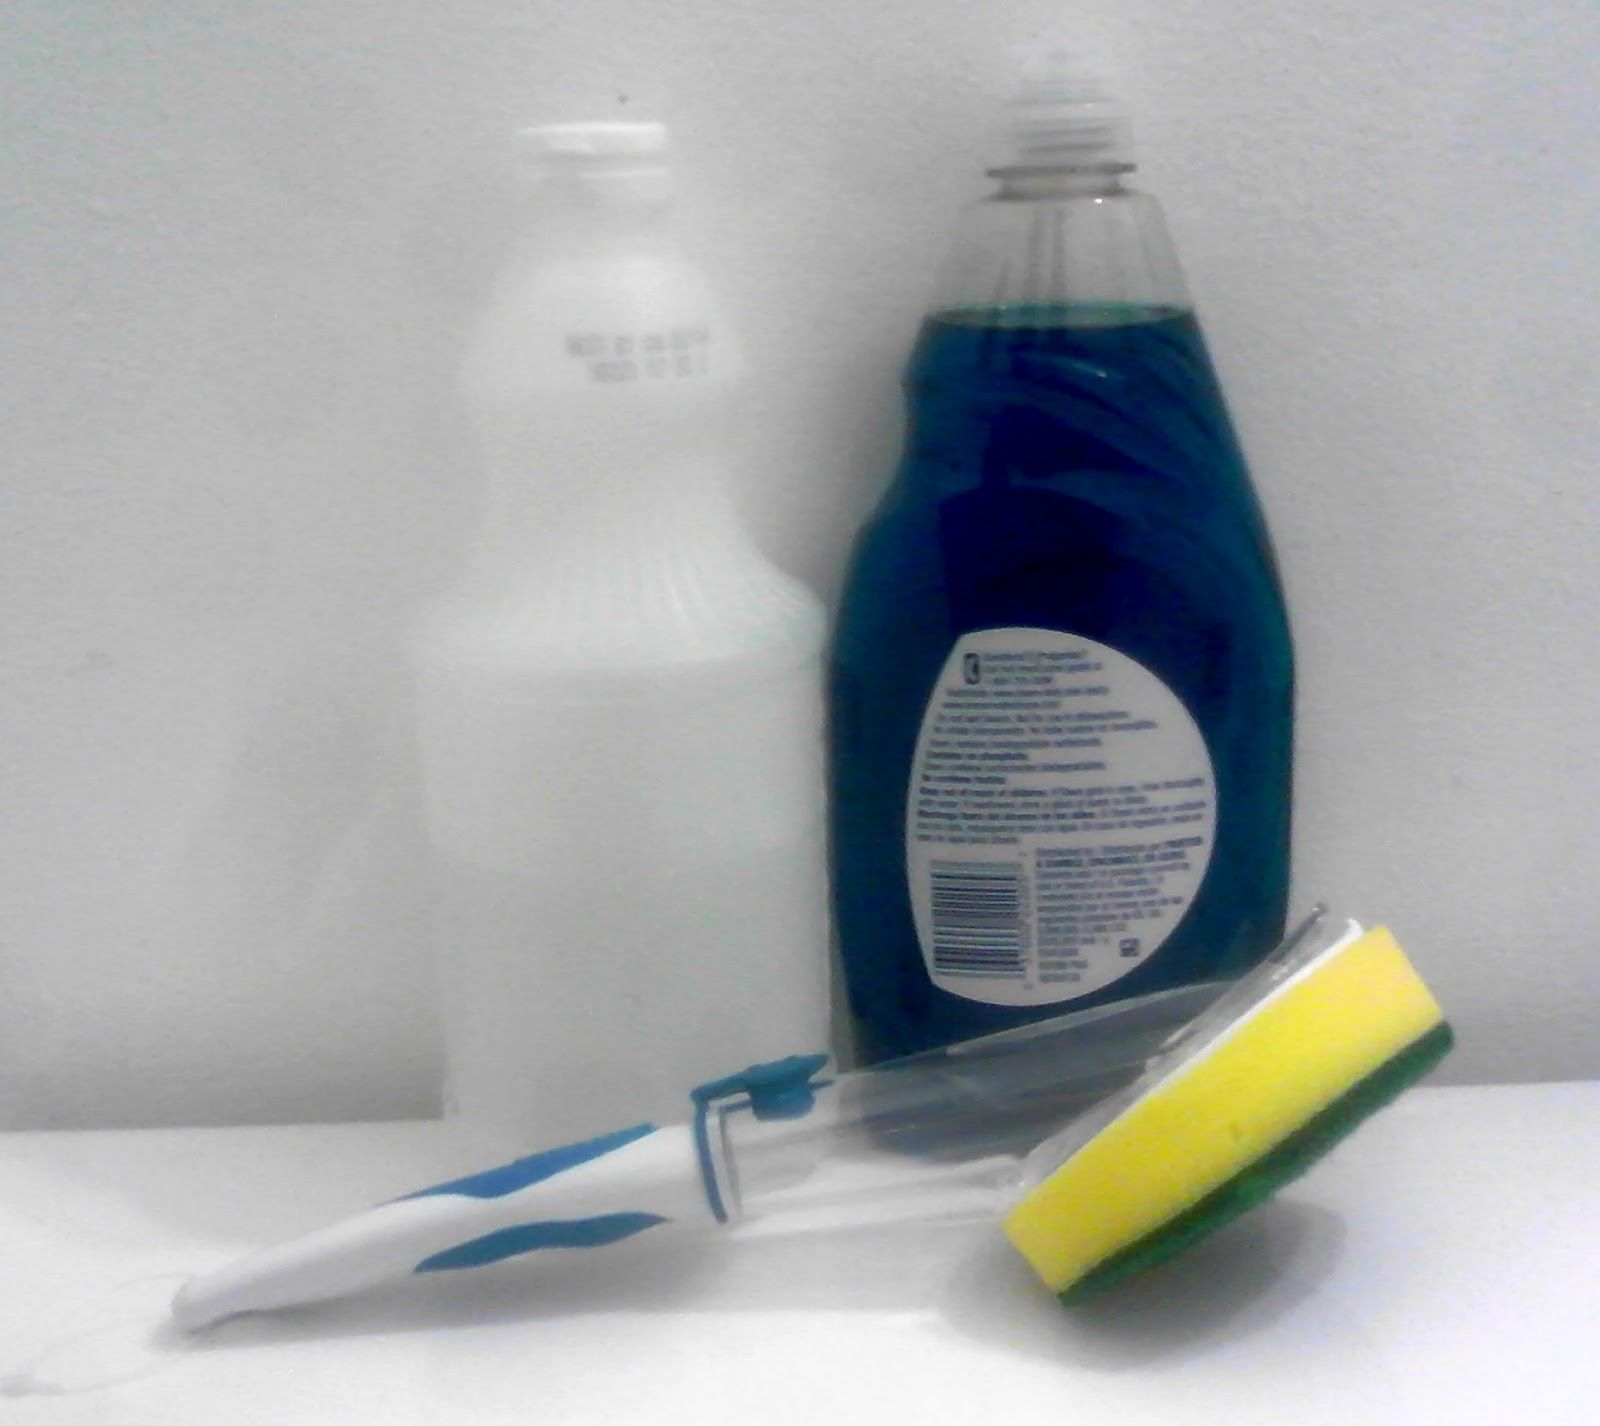 Homemade Mamas Shower Tub Cleaning Wand Half Vinegar Half Dish Soap And Just Clean While